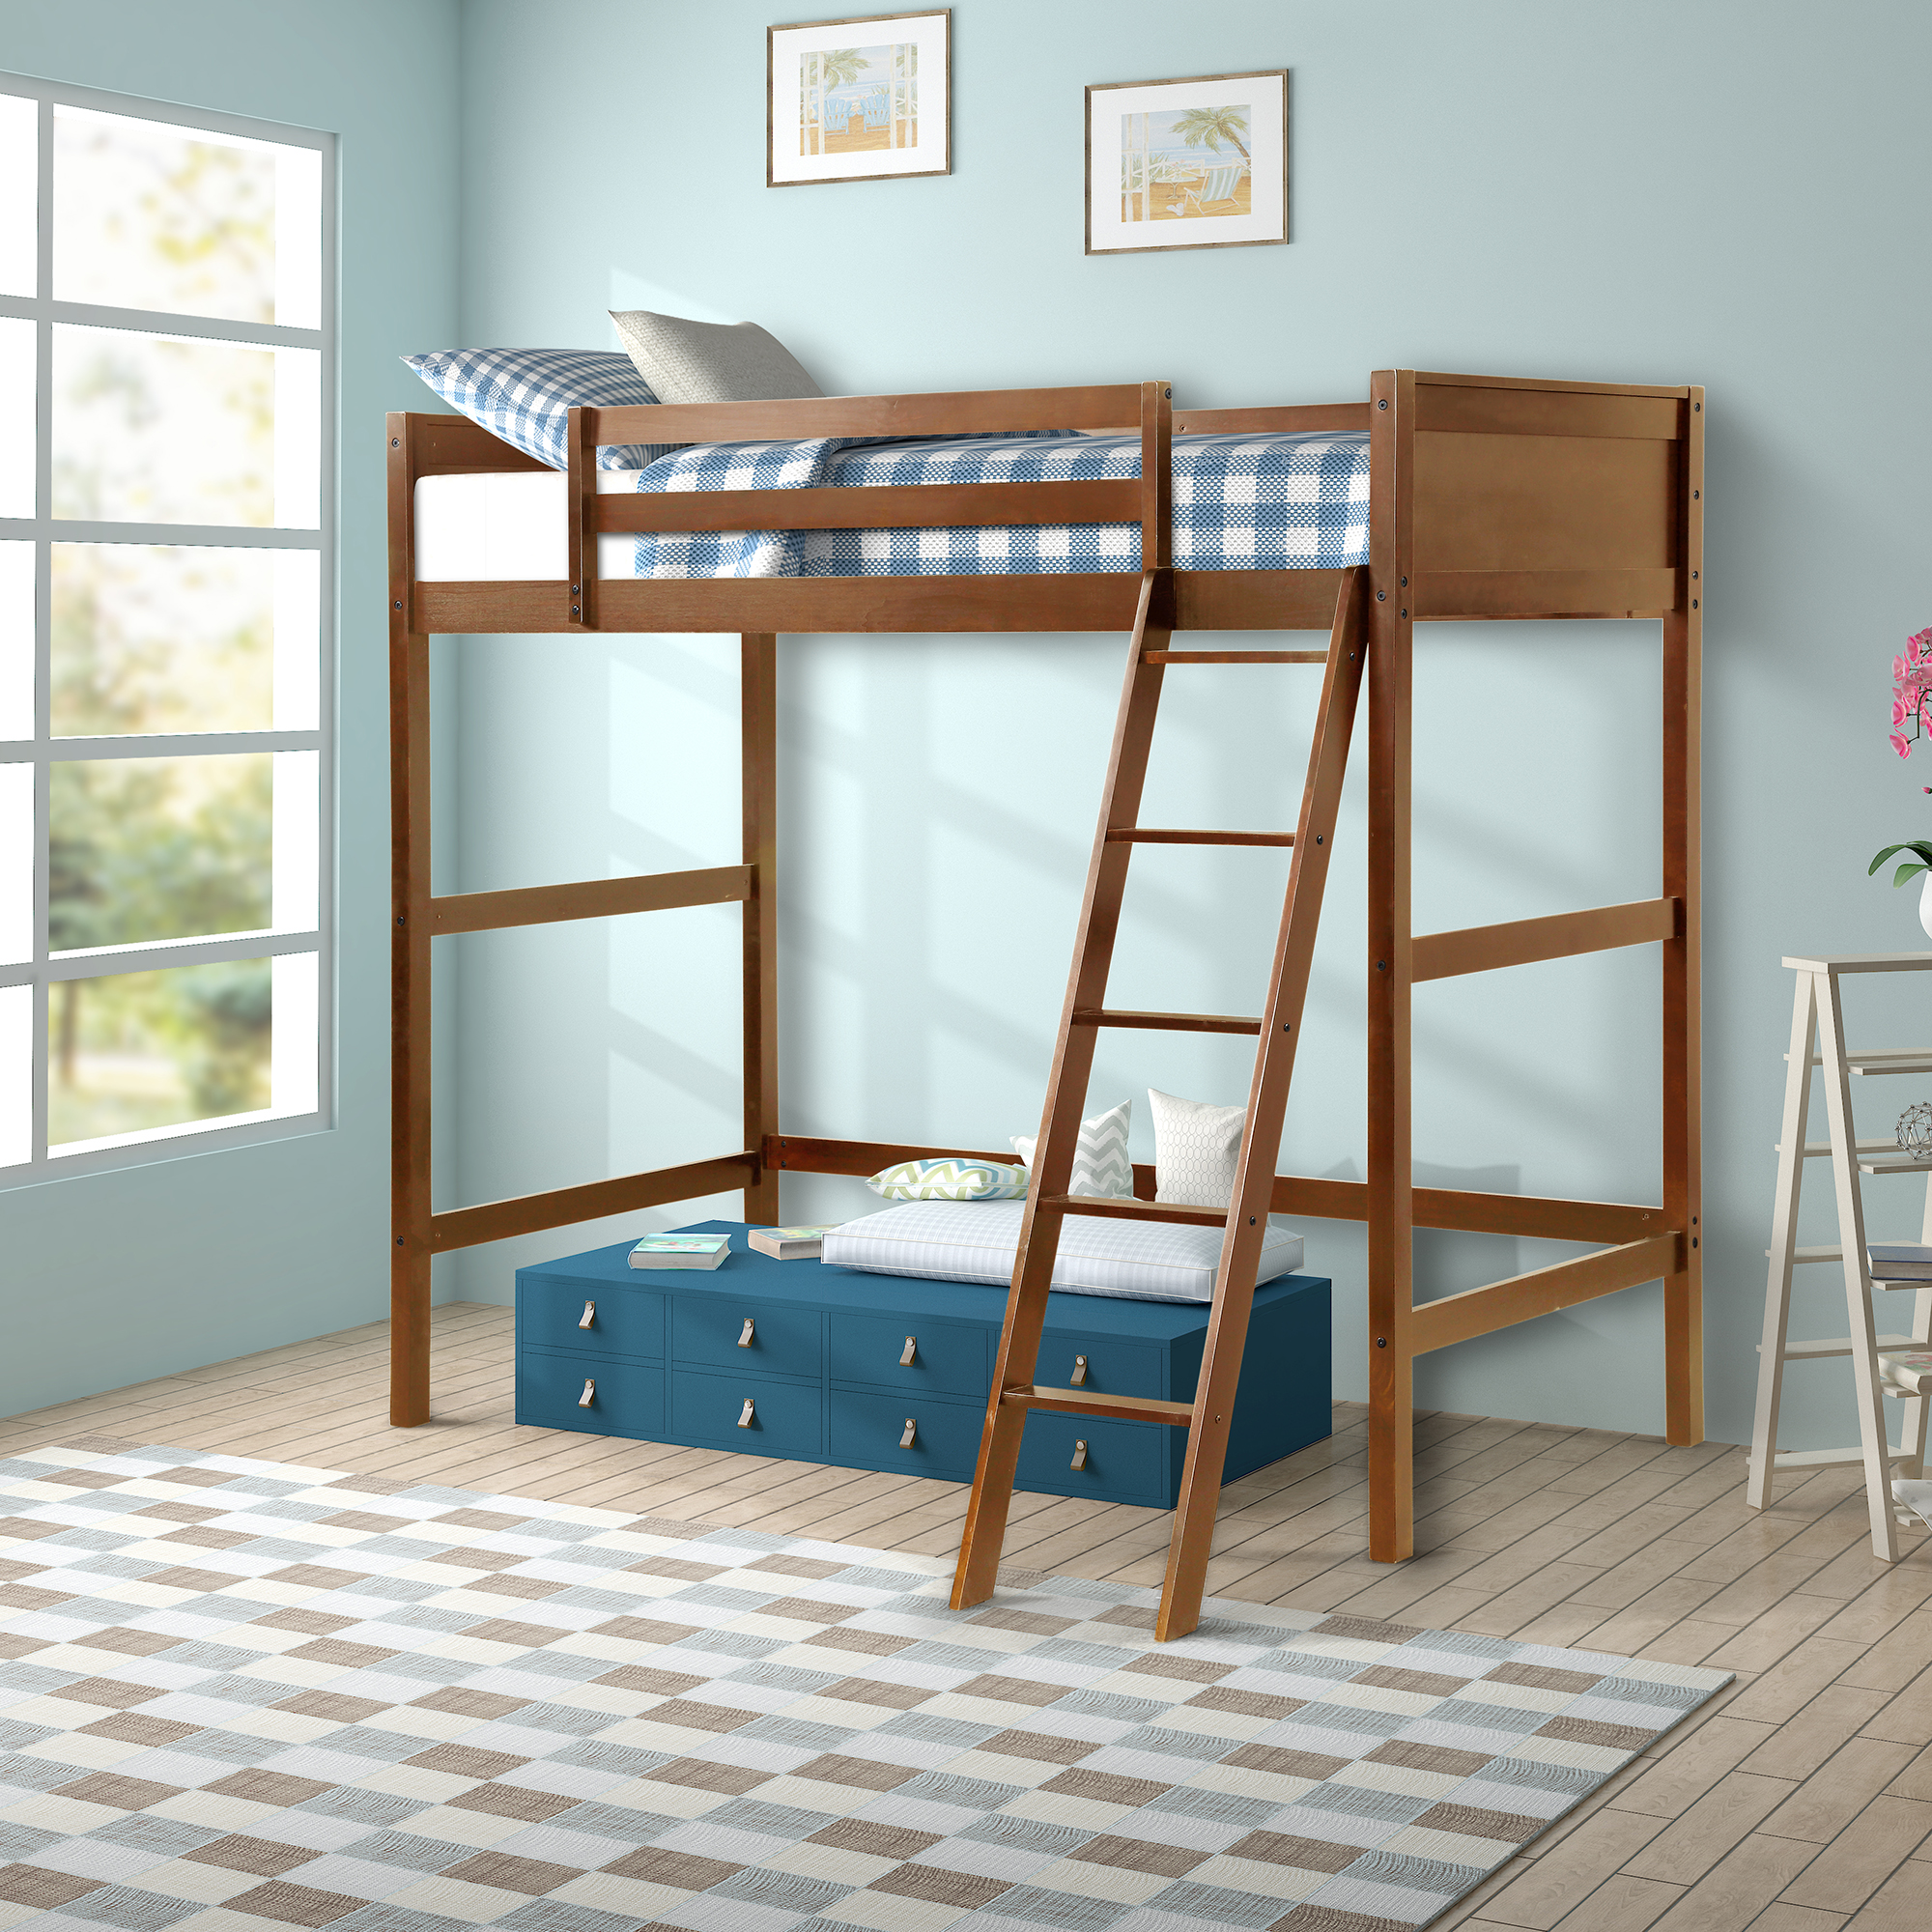 Harper&Bright Designs Wood Twin Loft Bed with a 5-Story Ladder, Walnut